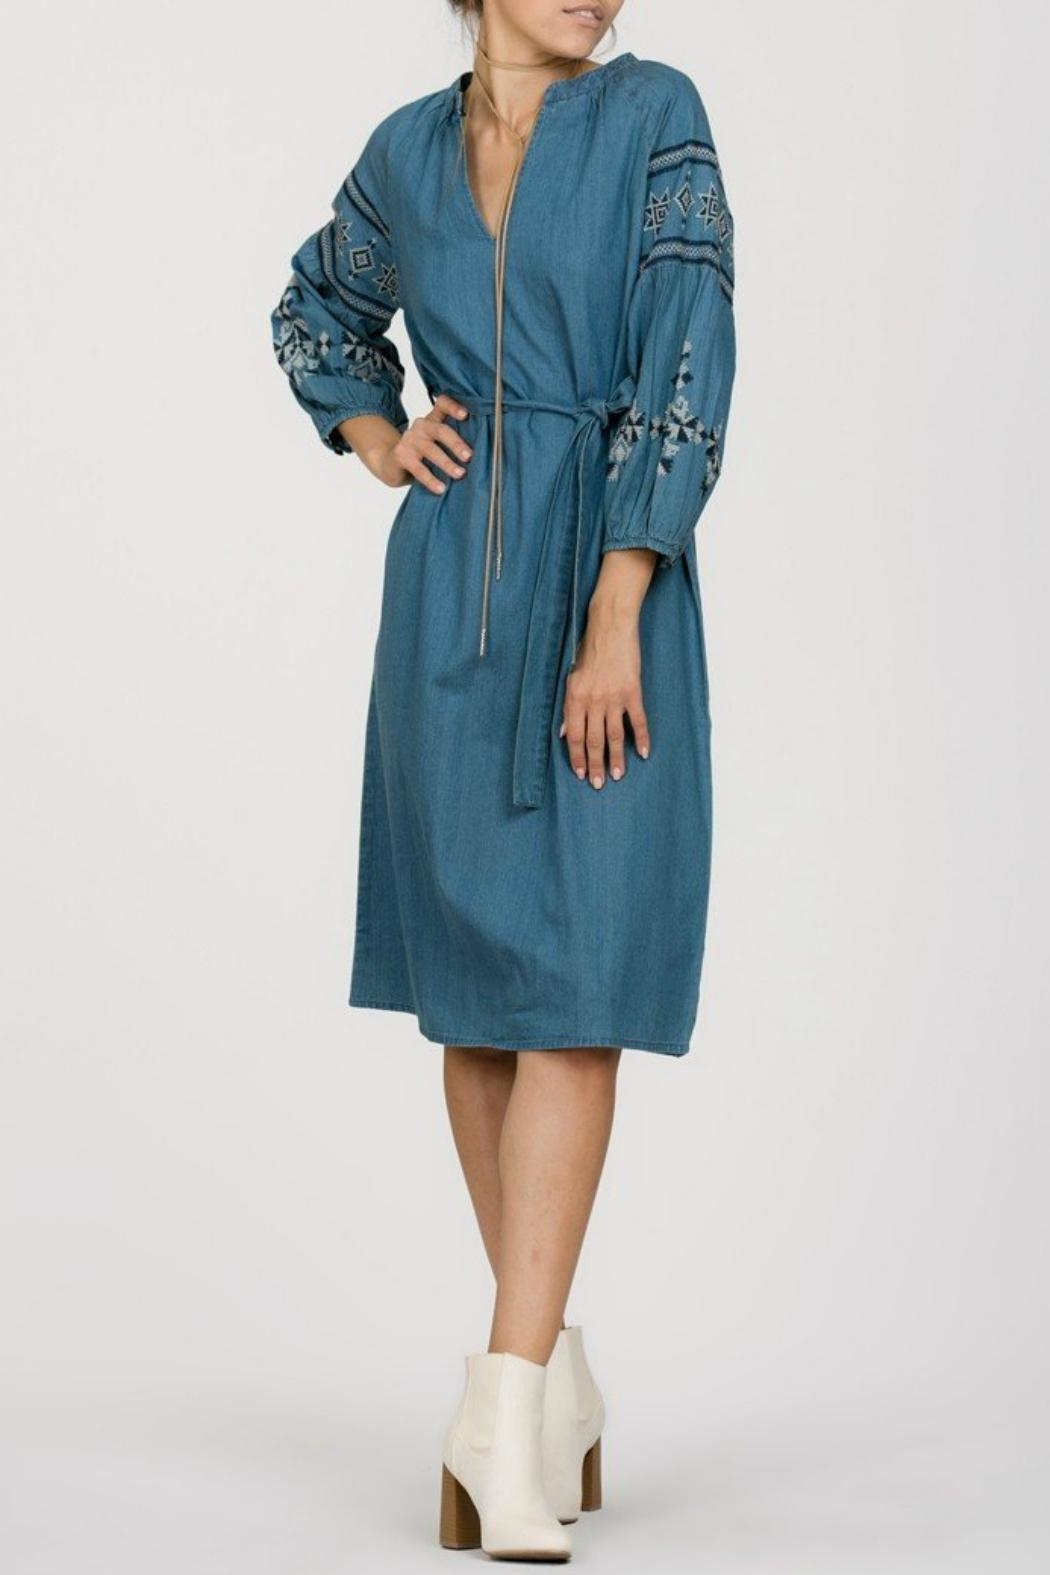 Ark & Co. Embroidered Denim Dress - Main Image